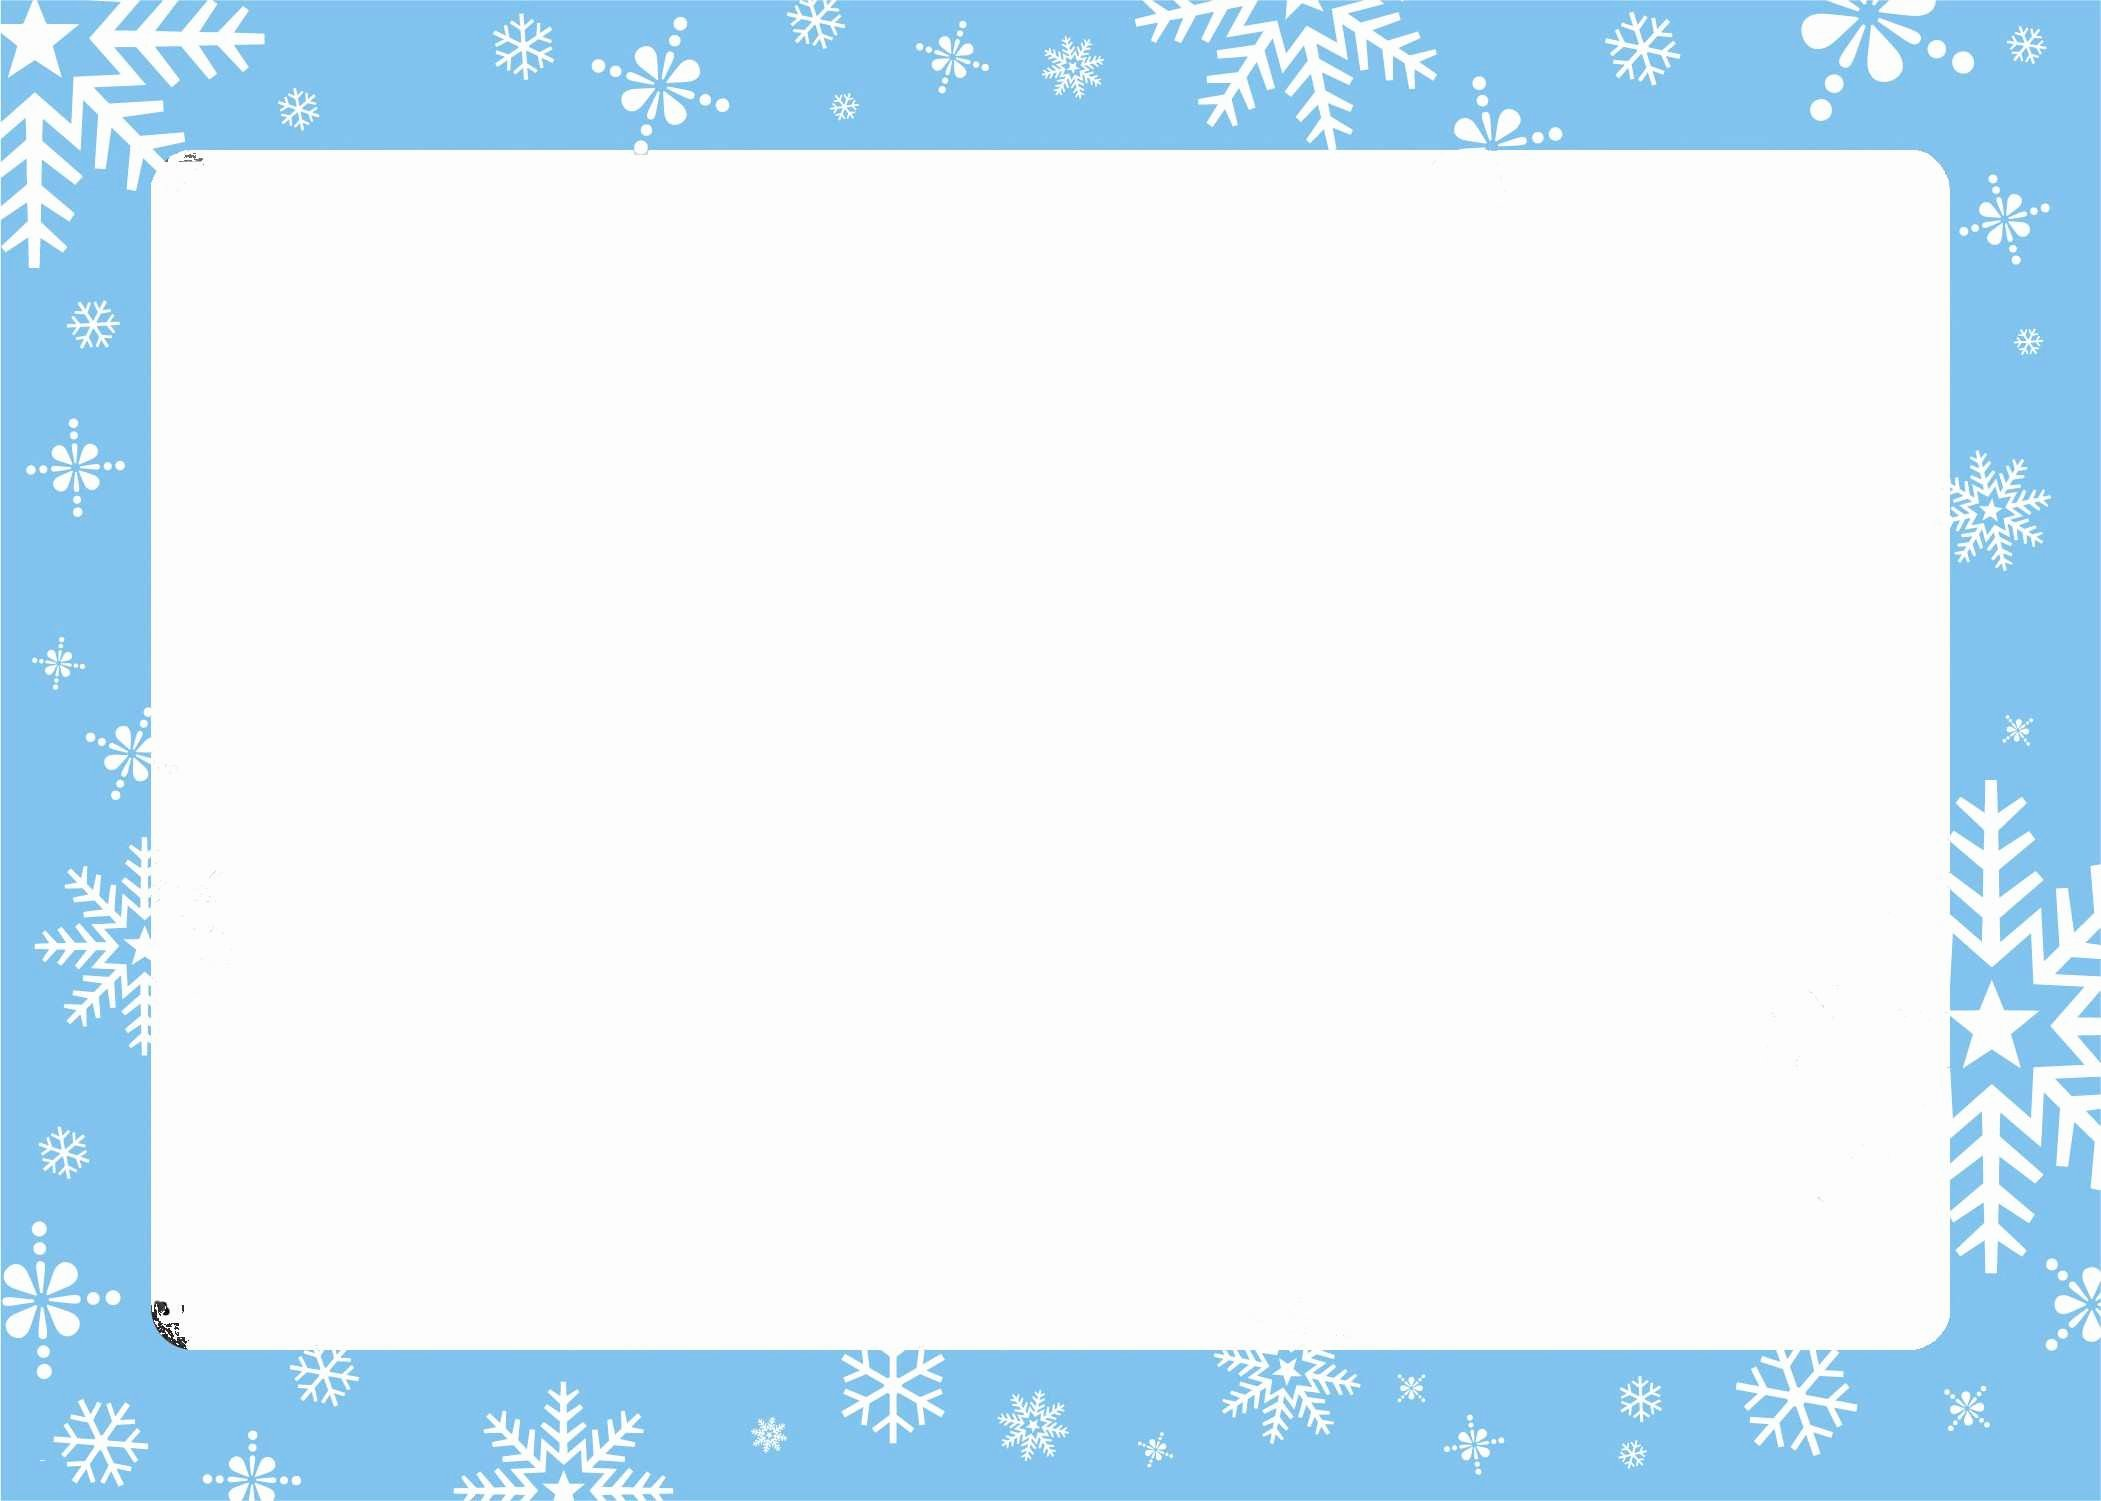 Photoshop Greeting Card Template Inspirational Lovely Free 5x7 Christmas Card Templates for Shop